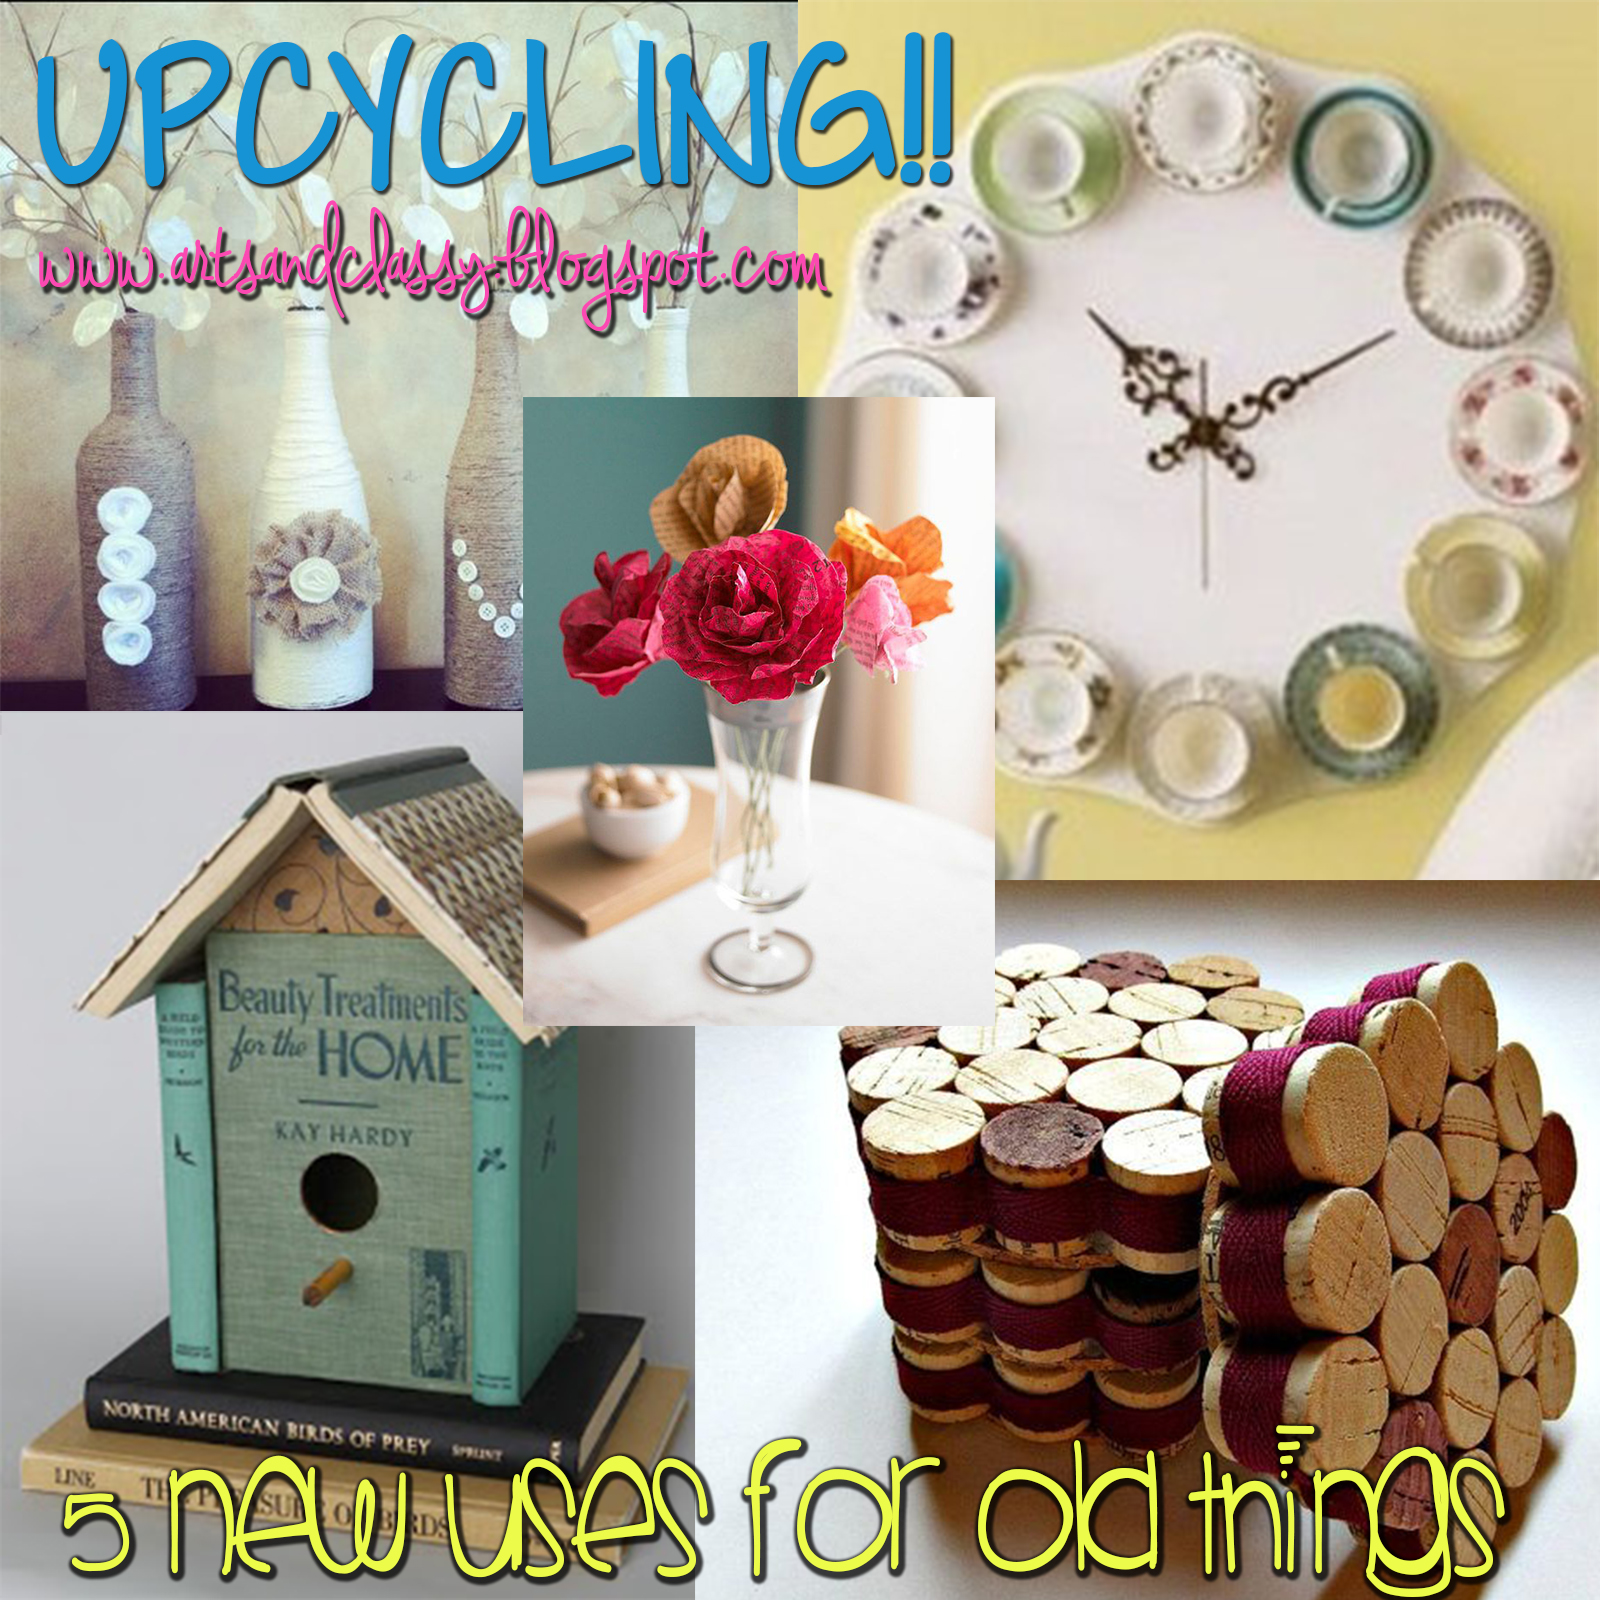 Upcycling Ideas for Home - 5 New Uses For Old Things | Arts and Classy